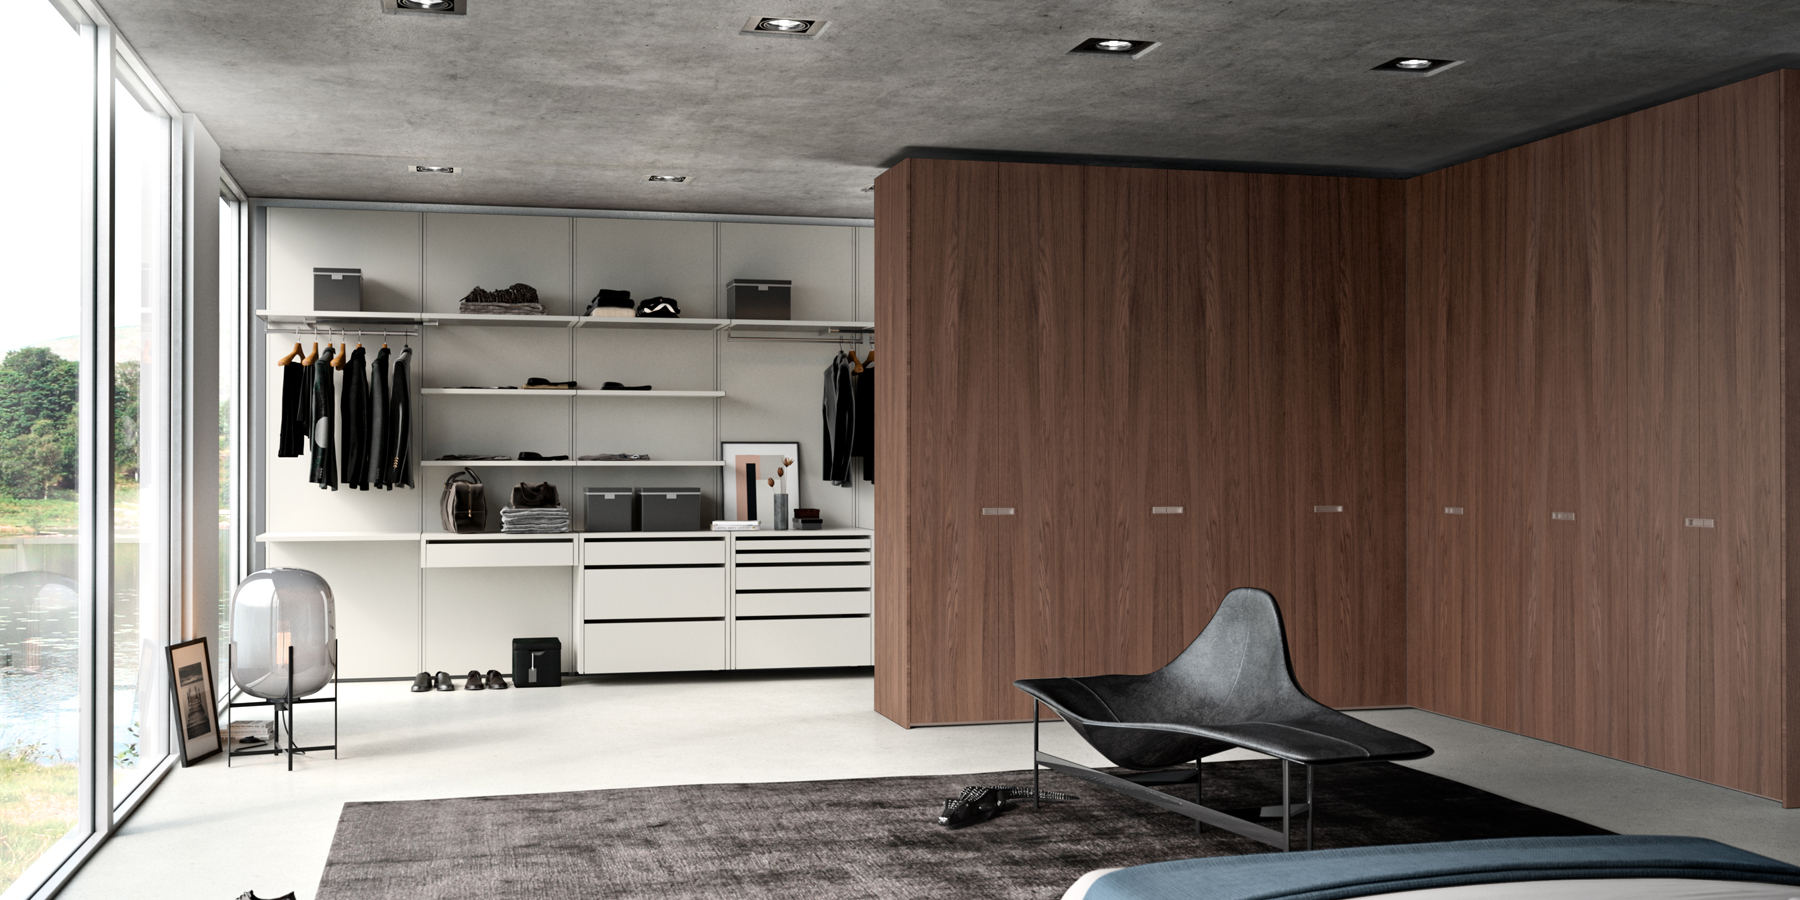 Walk-in wardrobe with open and closed areas